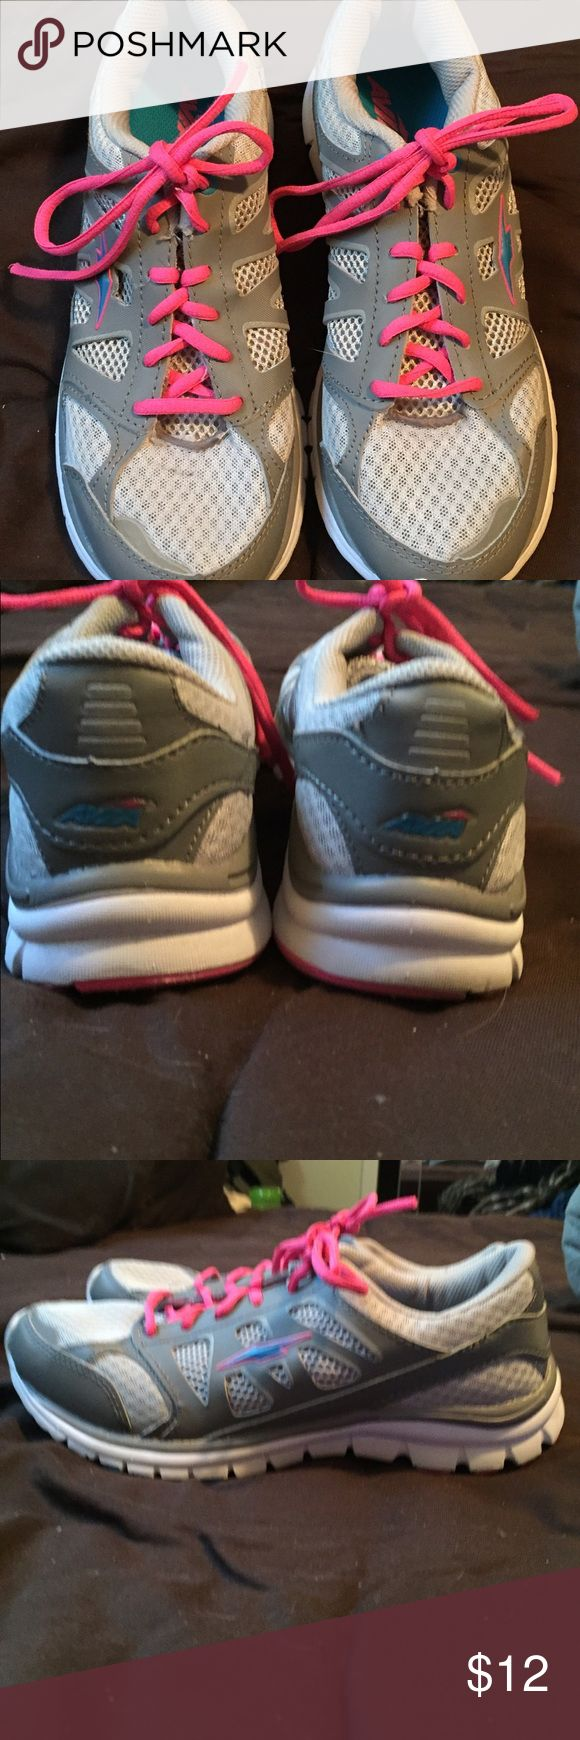 Avia NWOT very cute pink/gray running shoes Avia NWOT very cute pink/gray running shoes.  Brand new.. Clean sole.. Lightweight and comfy.  Goes with everything Bc of the gray color .. You can change laces if you want!! Avia Shoes Athletic Shoes